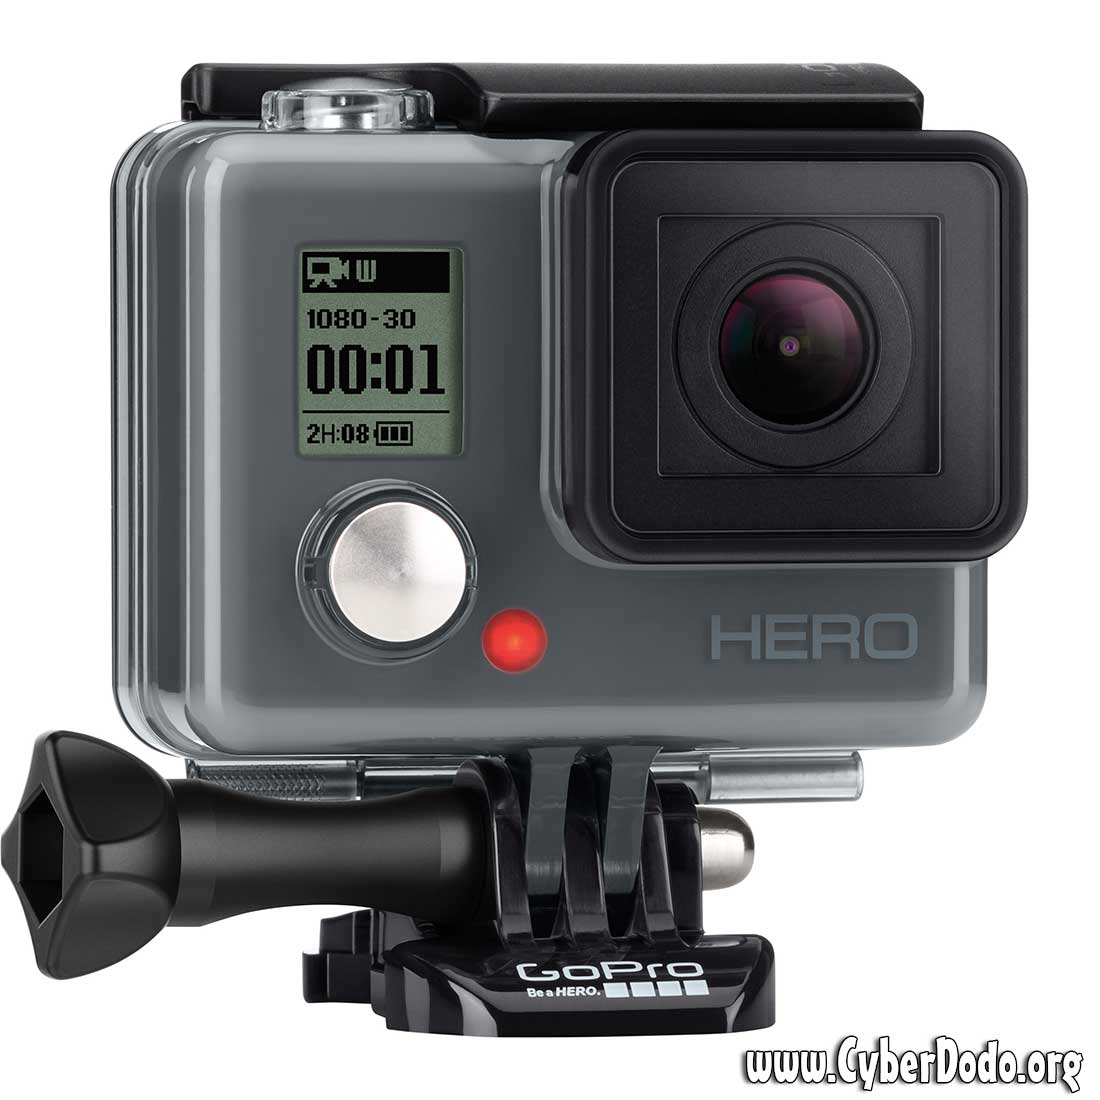 A GoPro HERO camera for the winner of our competition for the months of May and June 2015